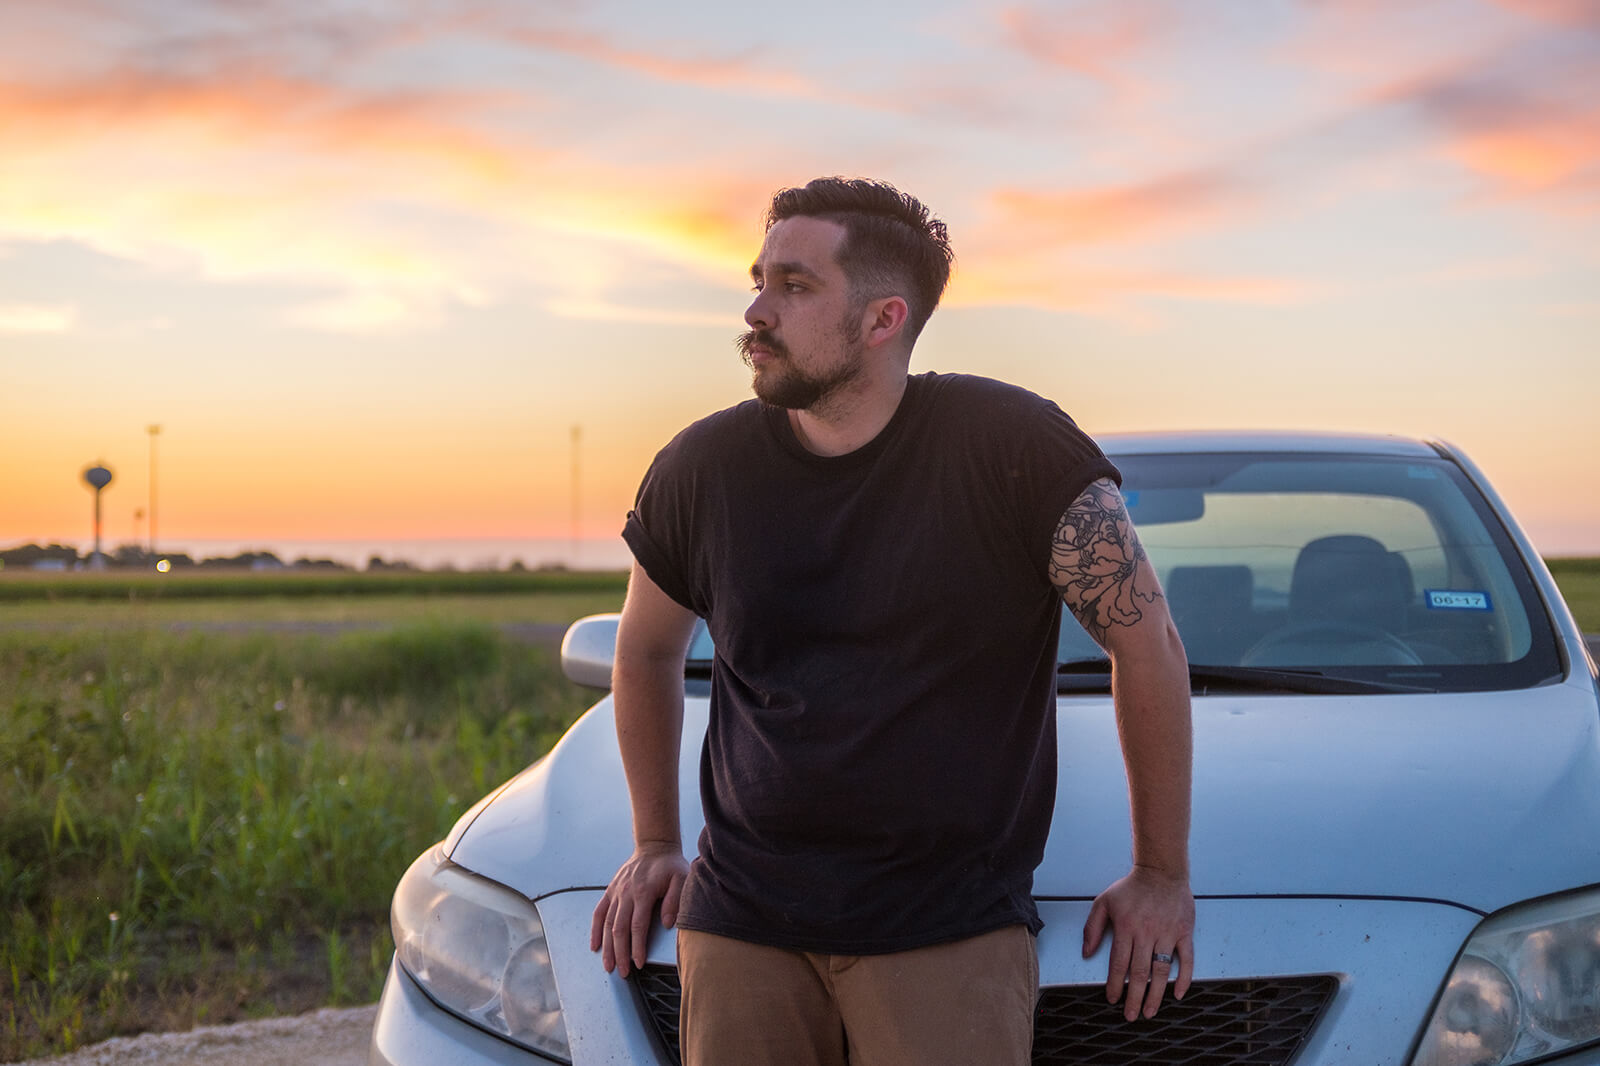 Man leaning on car with sunset in background